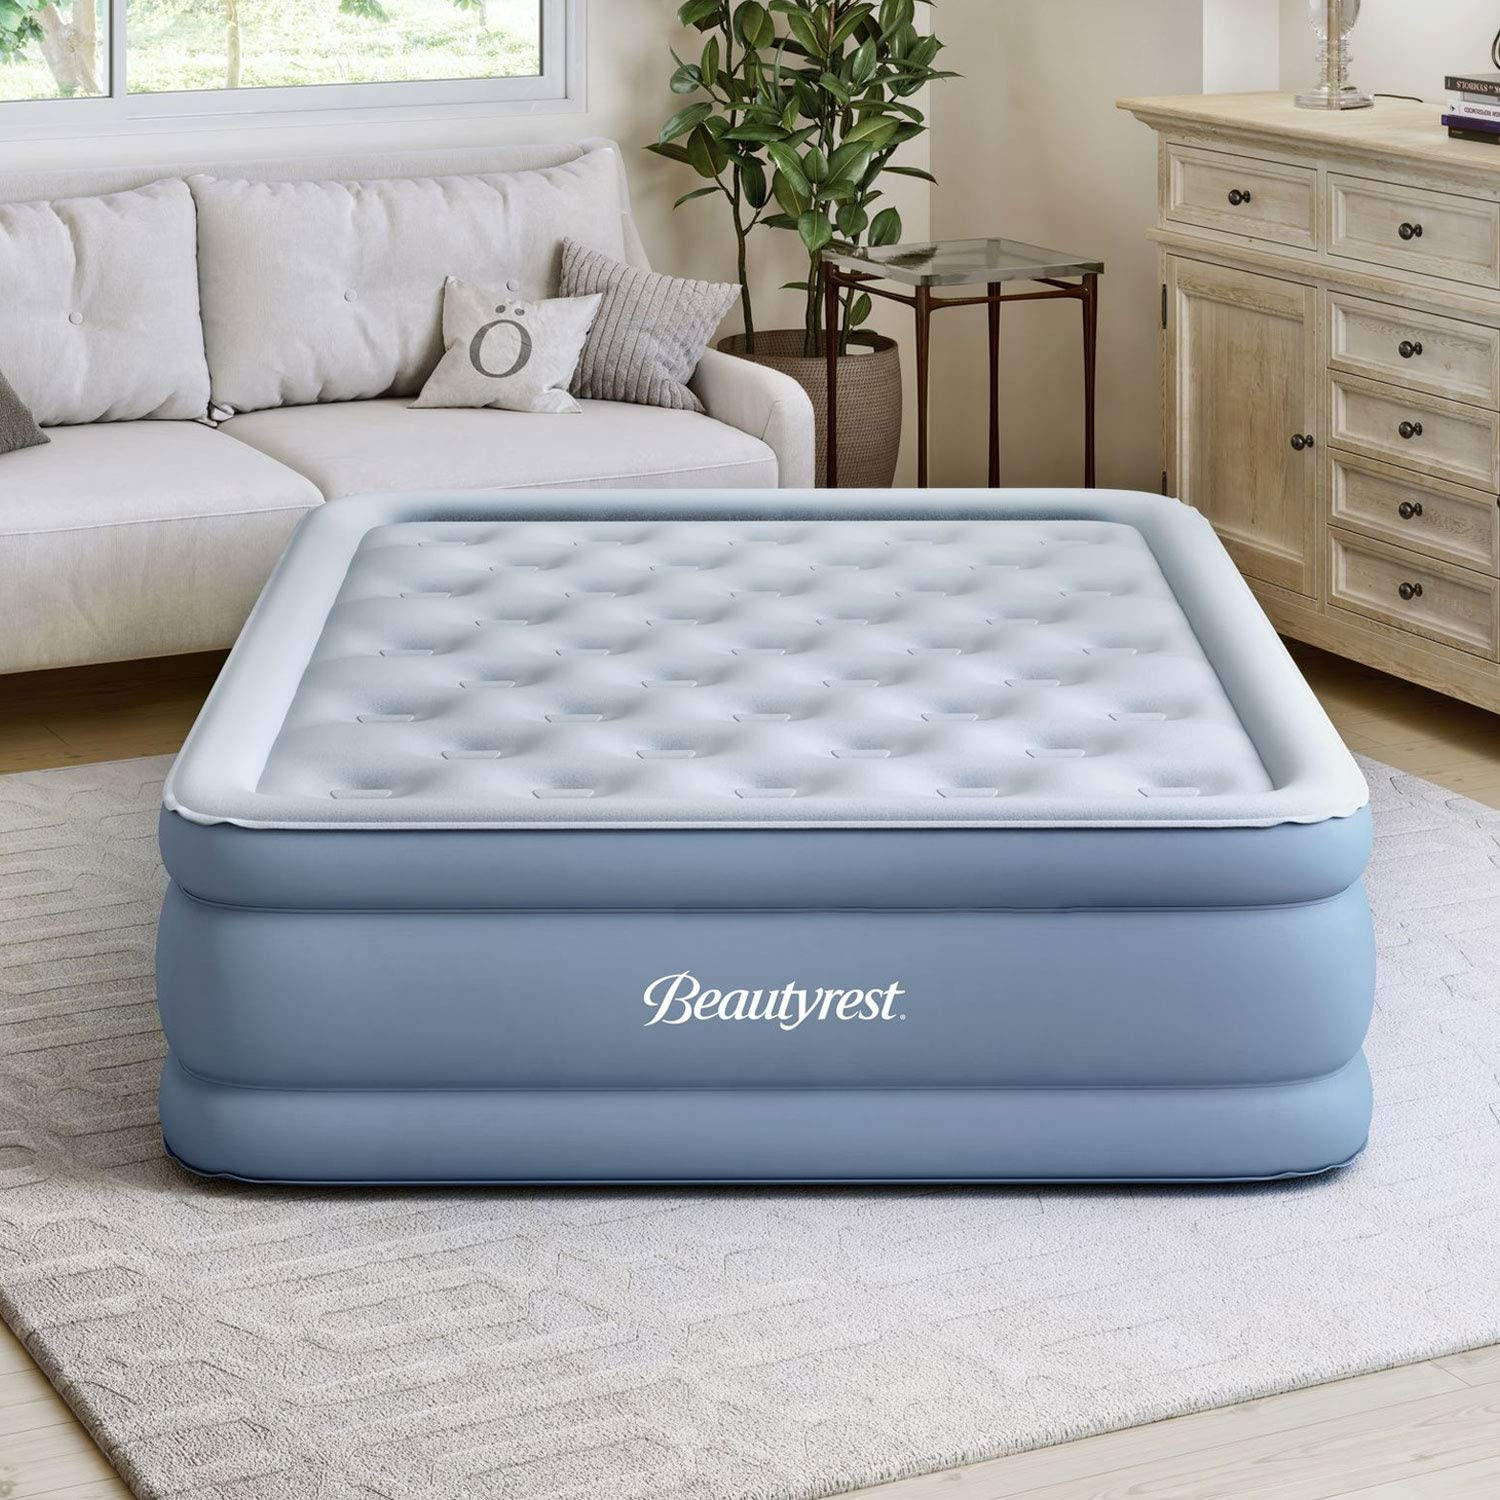 and Adapter Express Pump Twin Beautyrest MM09517TW 15 Inch Posture Lux Portable Inflatable Bed Air Mattress with Adjustable Firmness